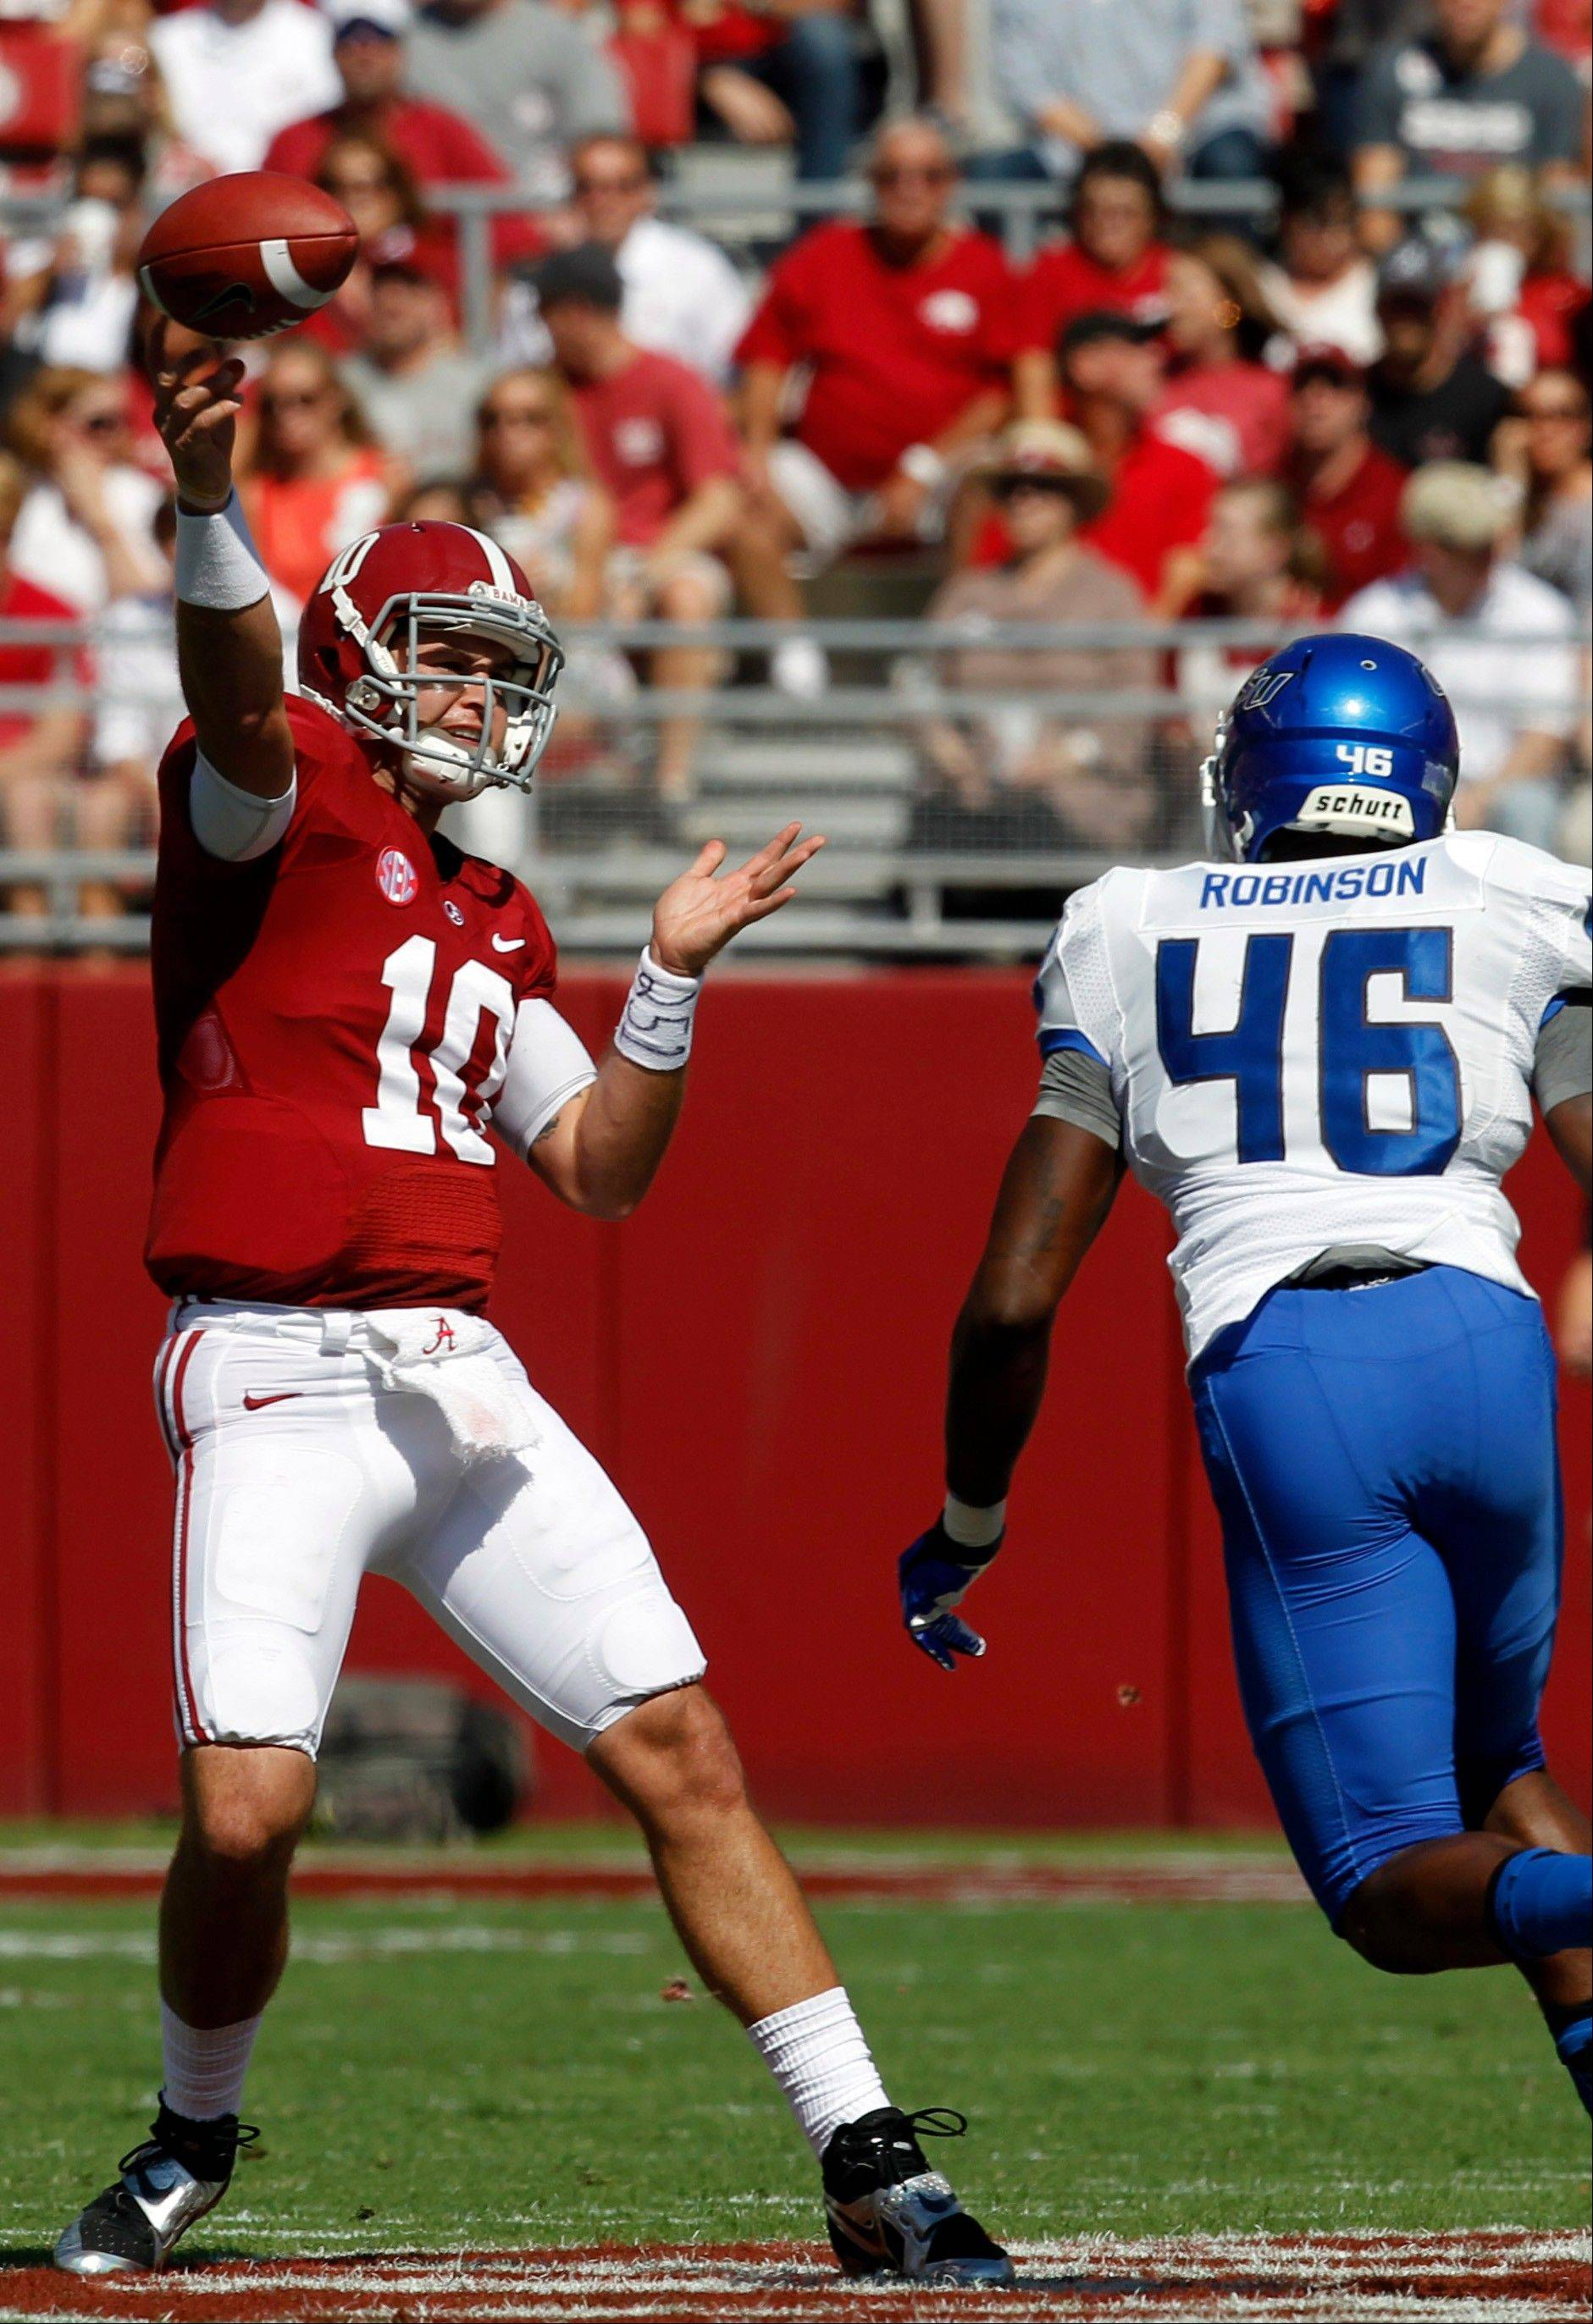 Alabama quarterback AJ McCarron (10) throws a pass while under pressure from Georgia State linebacker Jarrell Robinson (46) during the first half of an NCAA college football game on Saturday, Oct. 5, 2013, in Tuscaloosa, Ala. (AP Photo/Butch Dill)